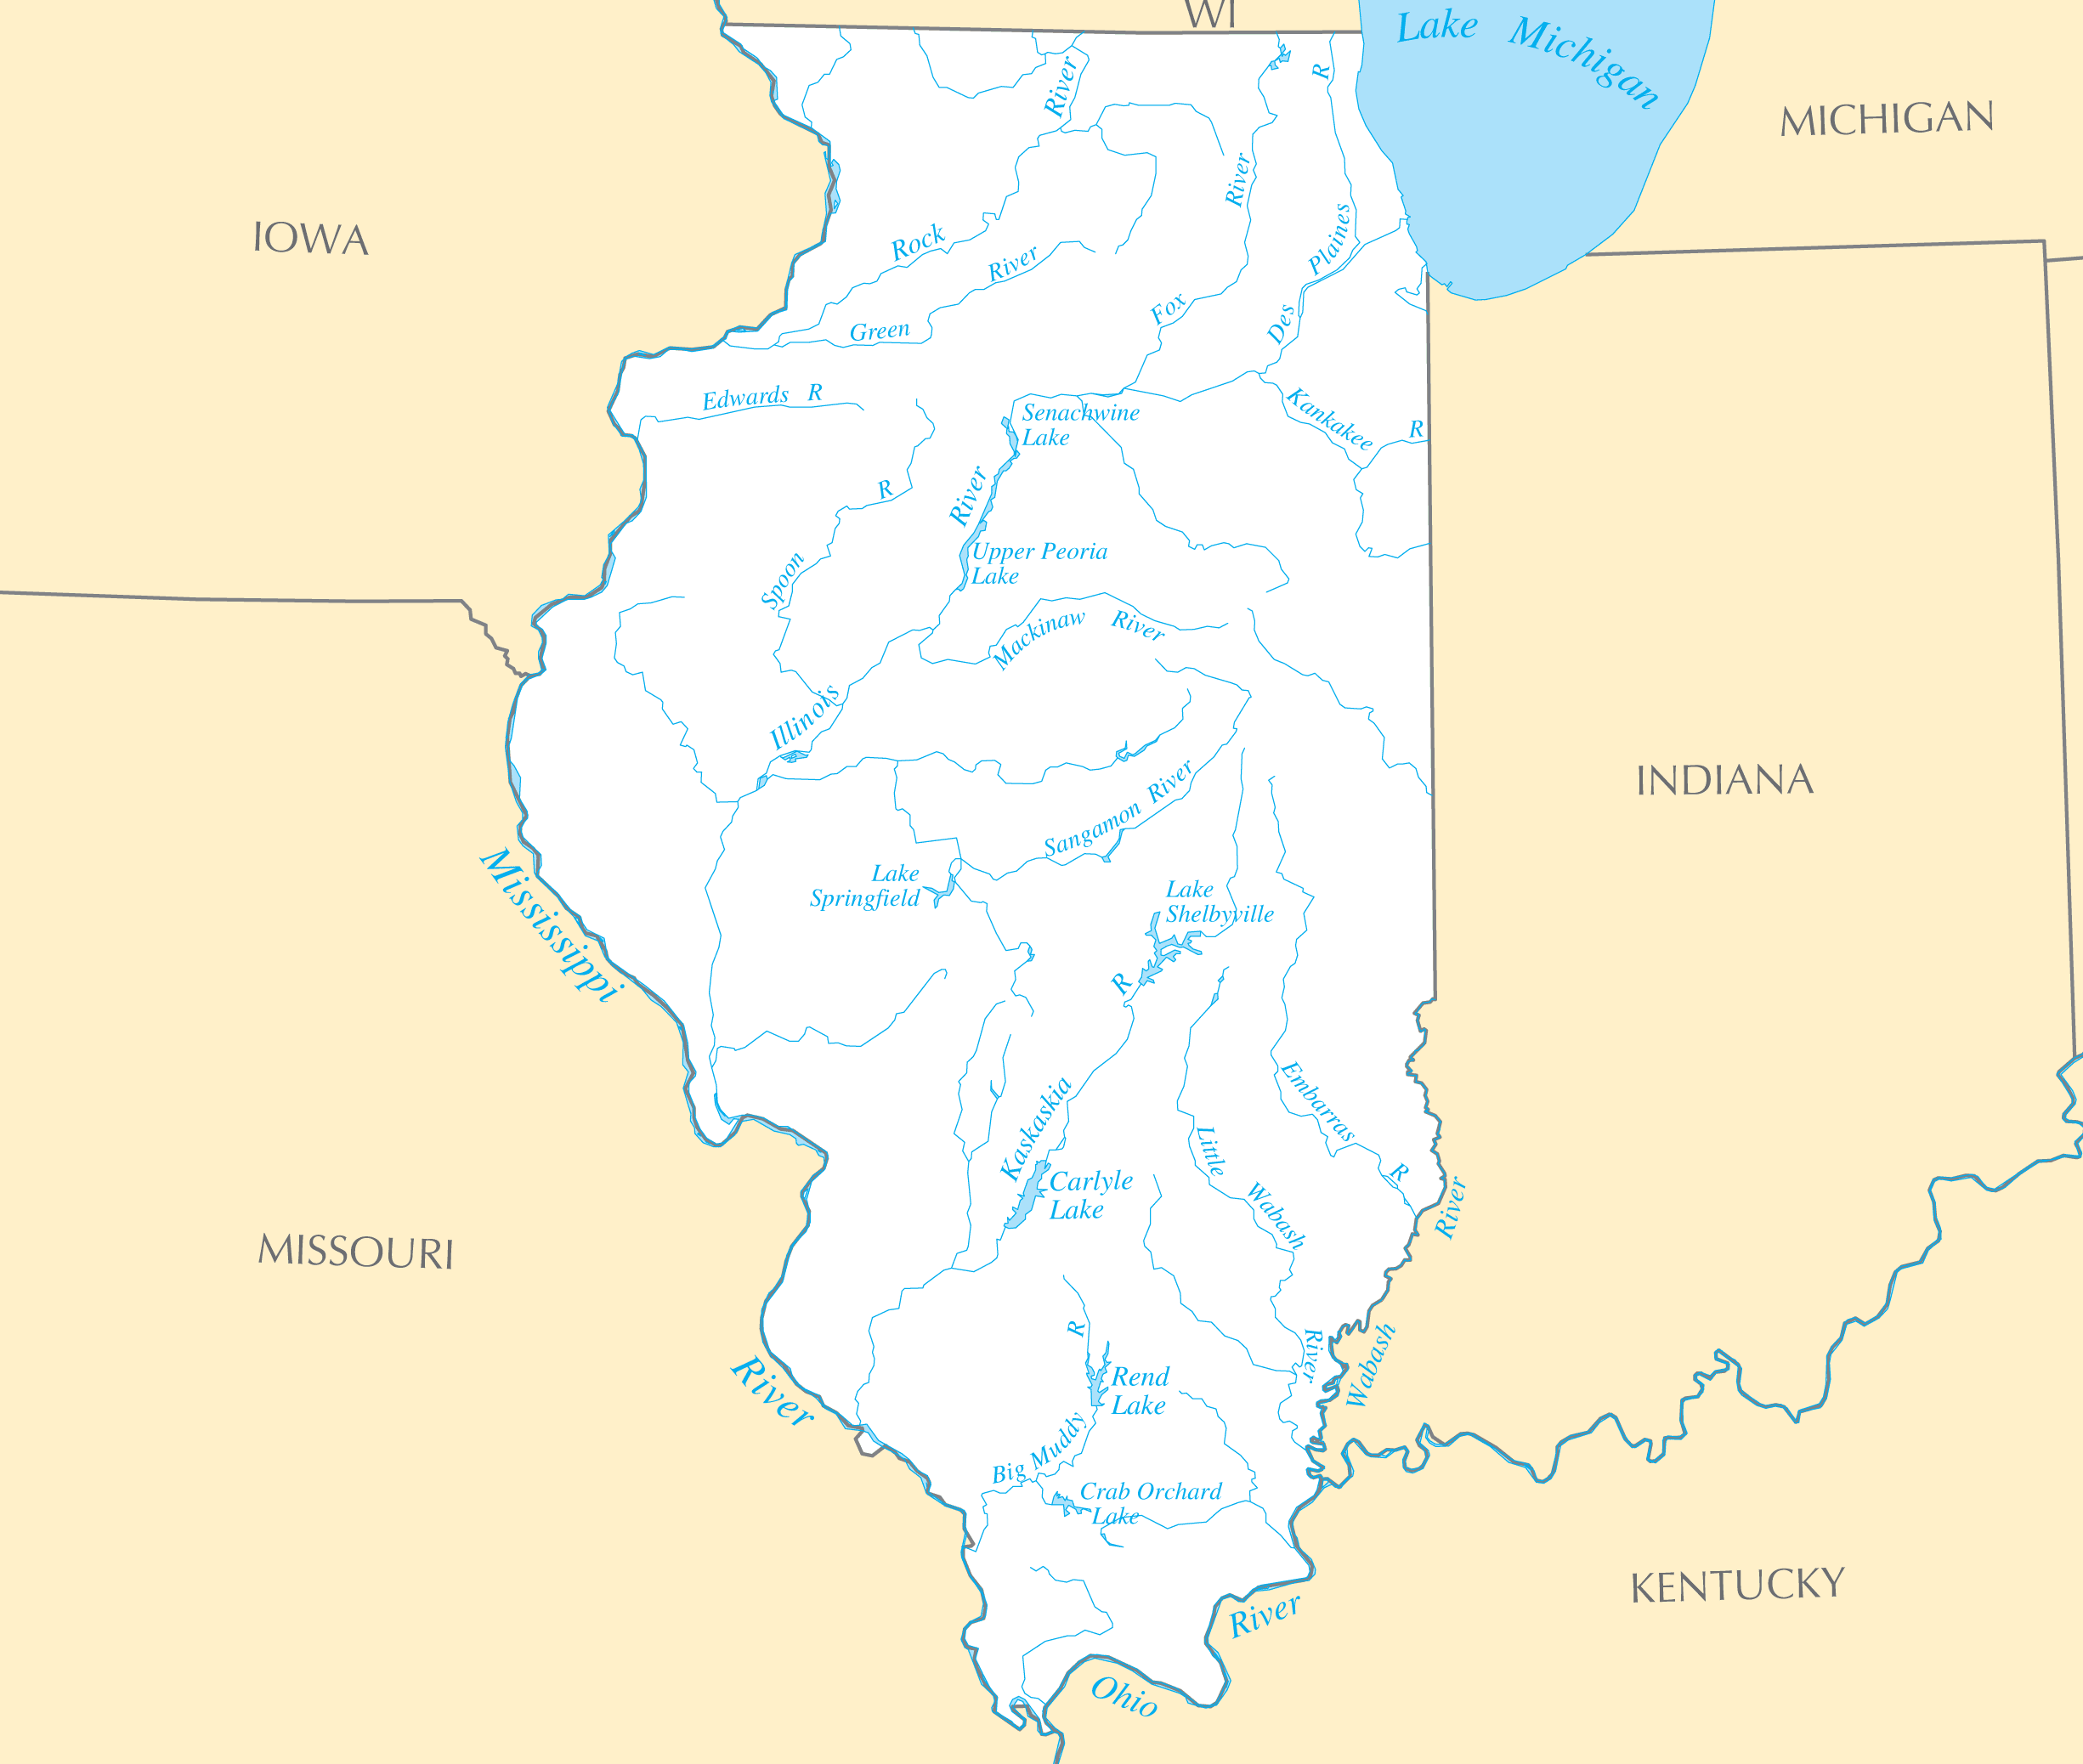 Illinois Rivers And Lakes Mapsofnet - Map of illinois rivers